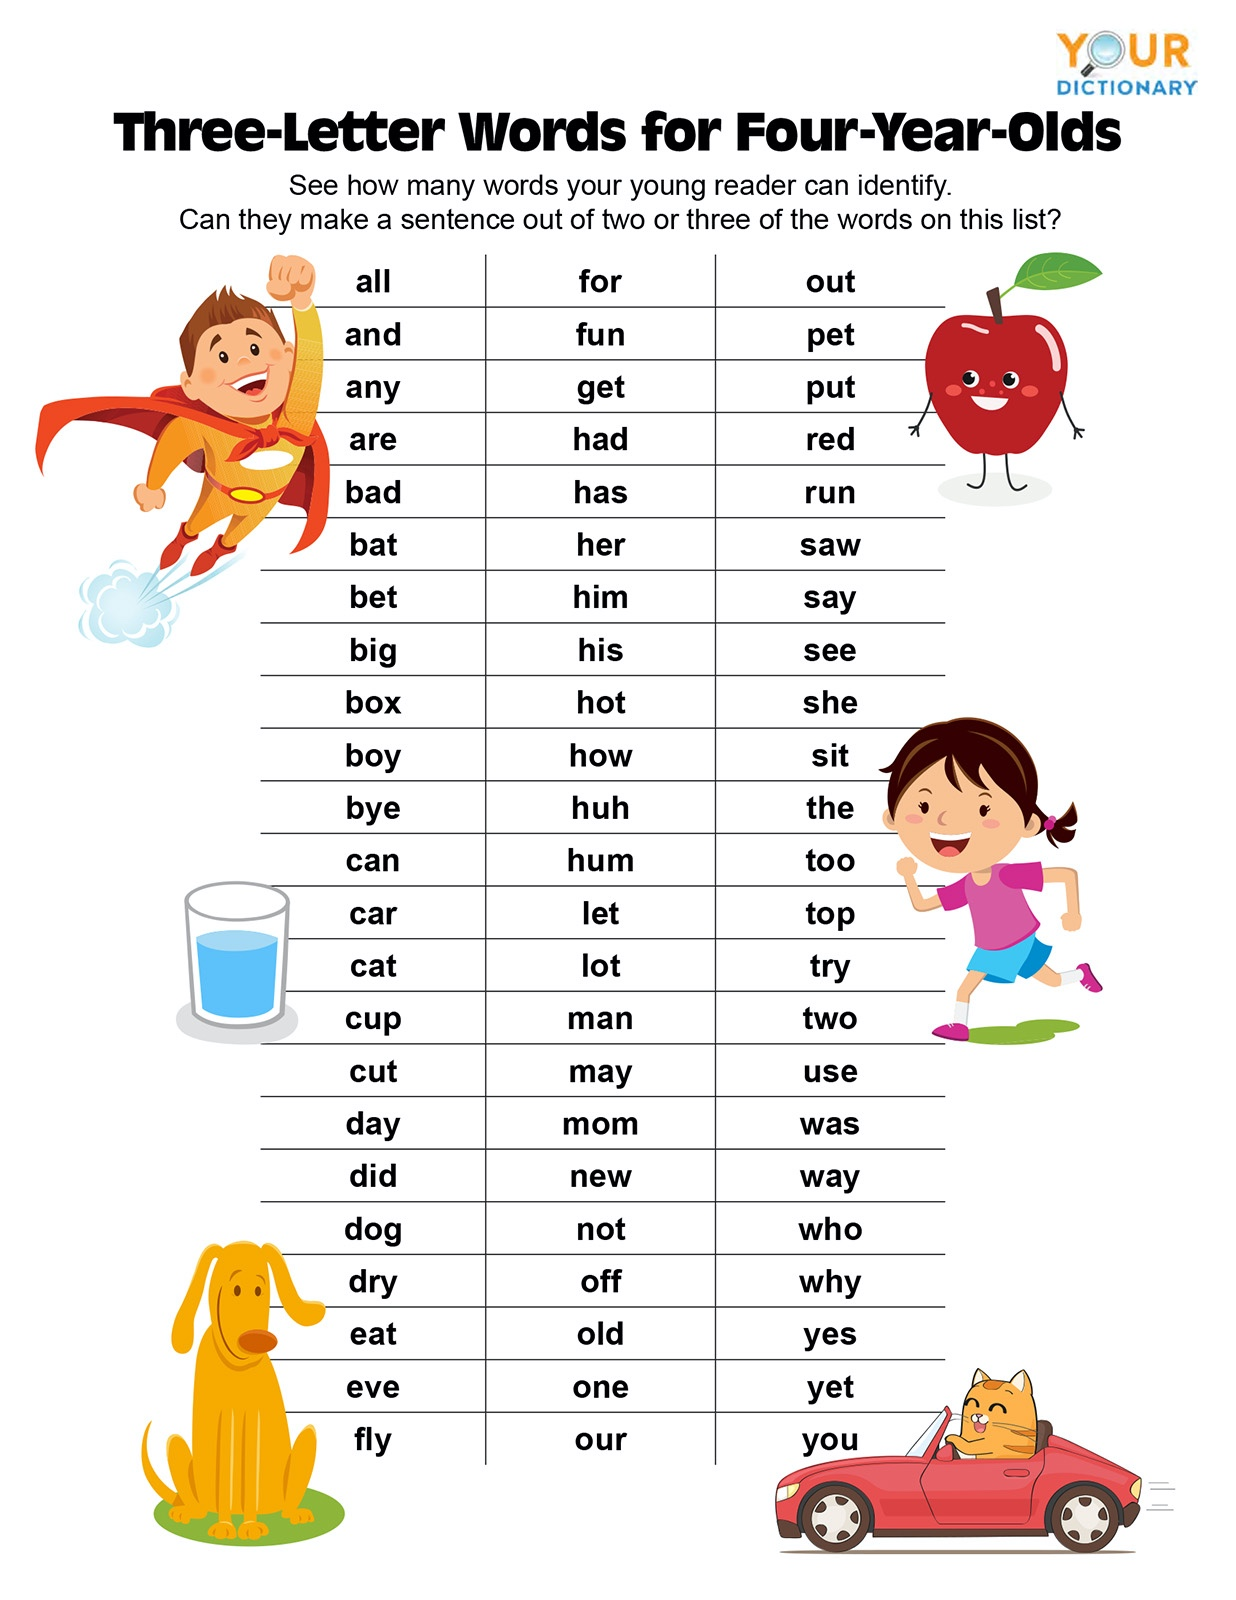 Three-Letter Words for Four-Year-Olds